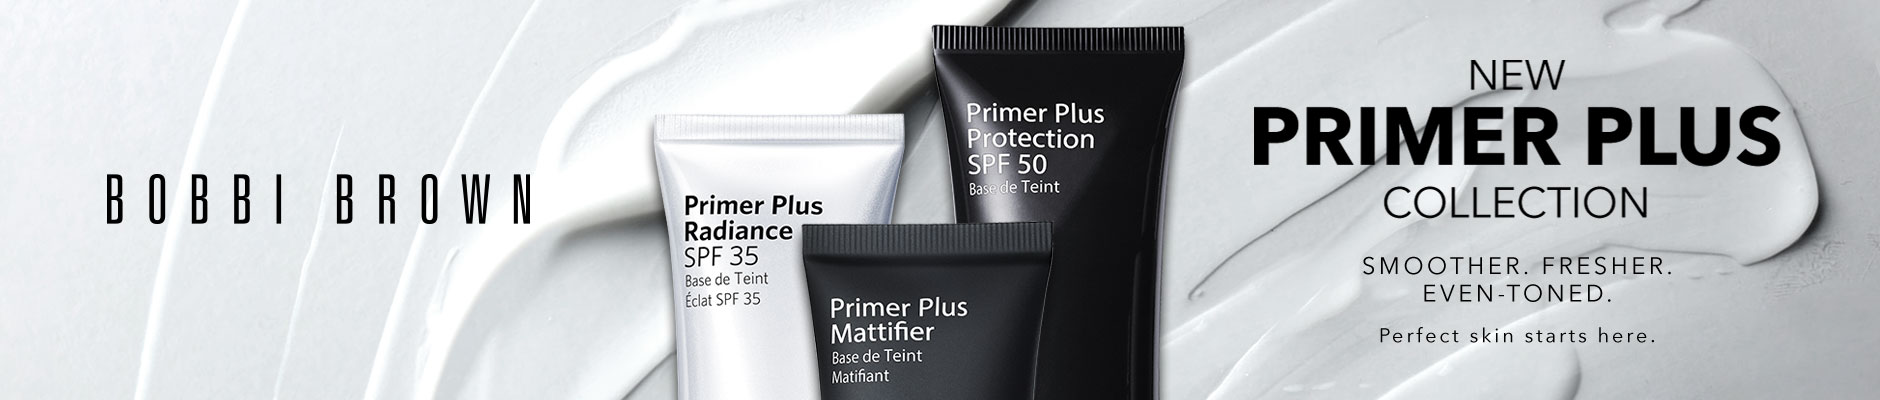 Bobbi Brown - New Primer Plus Collection - Smoother. Fresher. Even-toned. Perfect skin starts here.